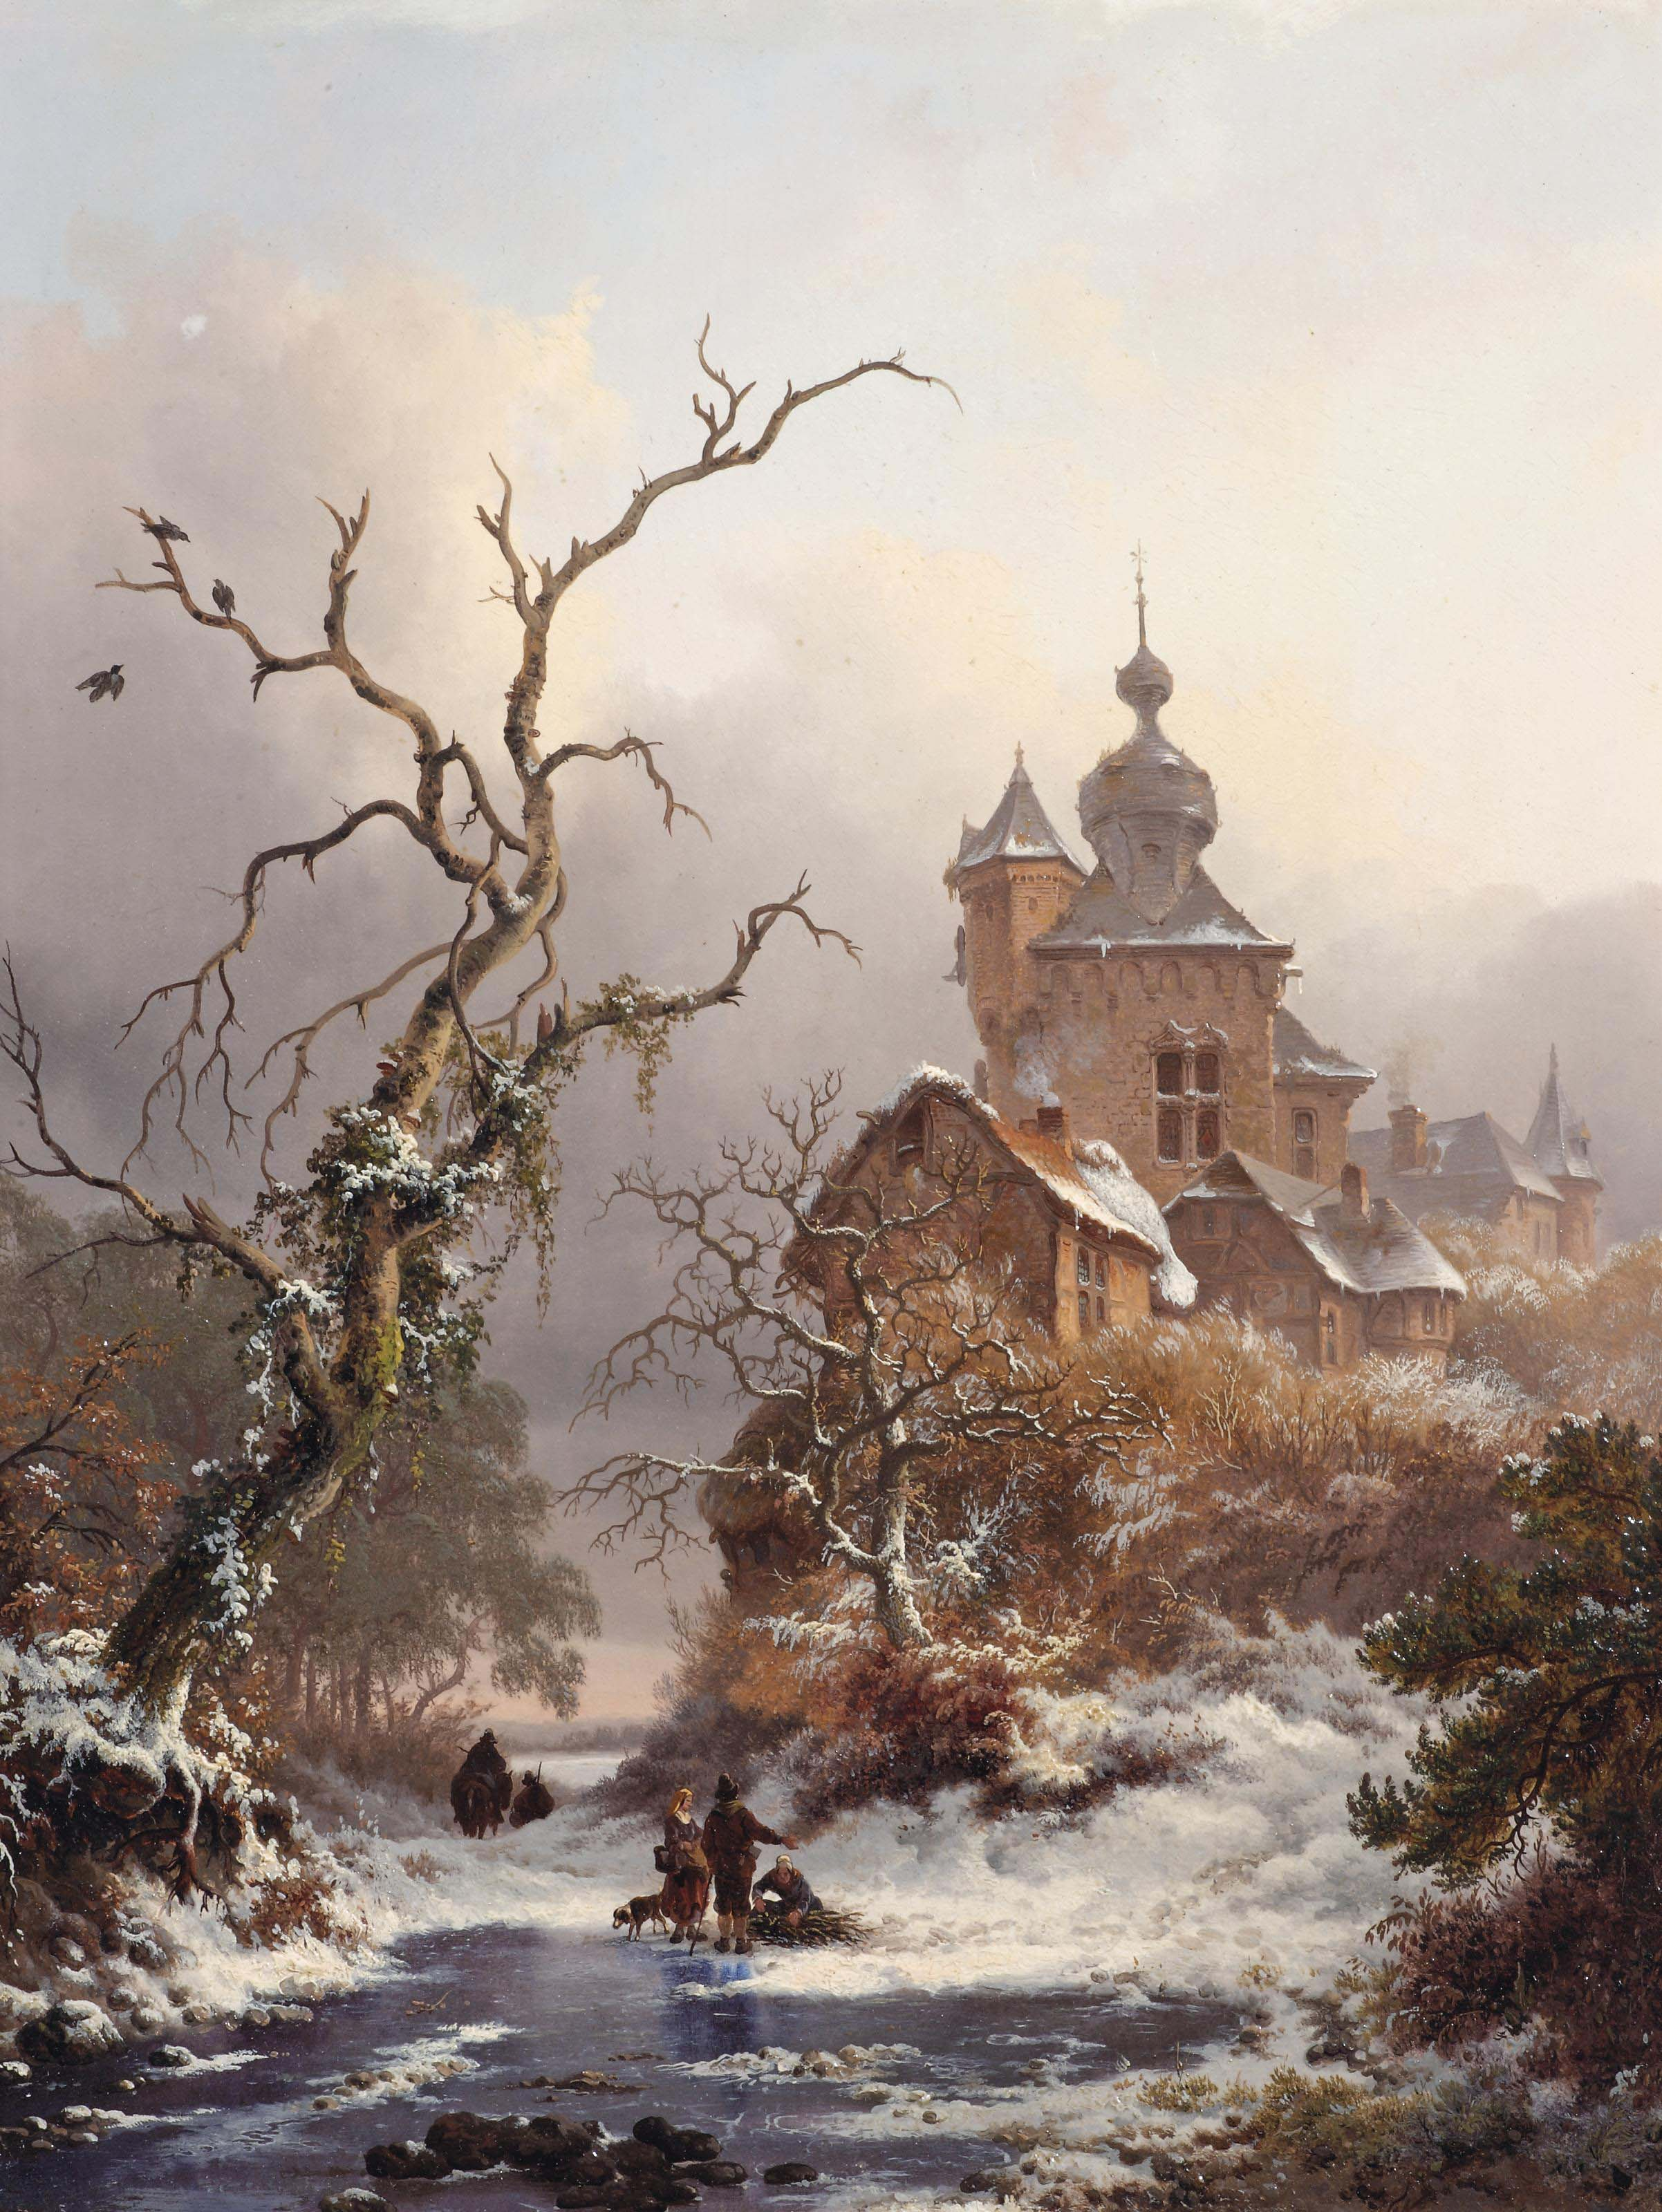 An idyllic winter scene with woodgatherers near a castle